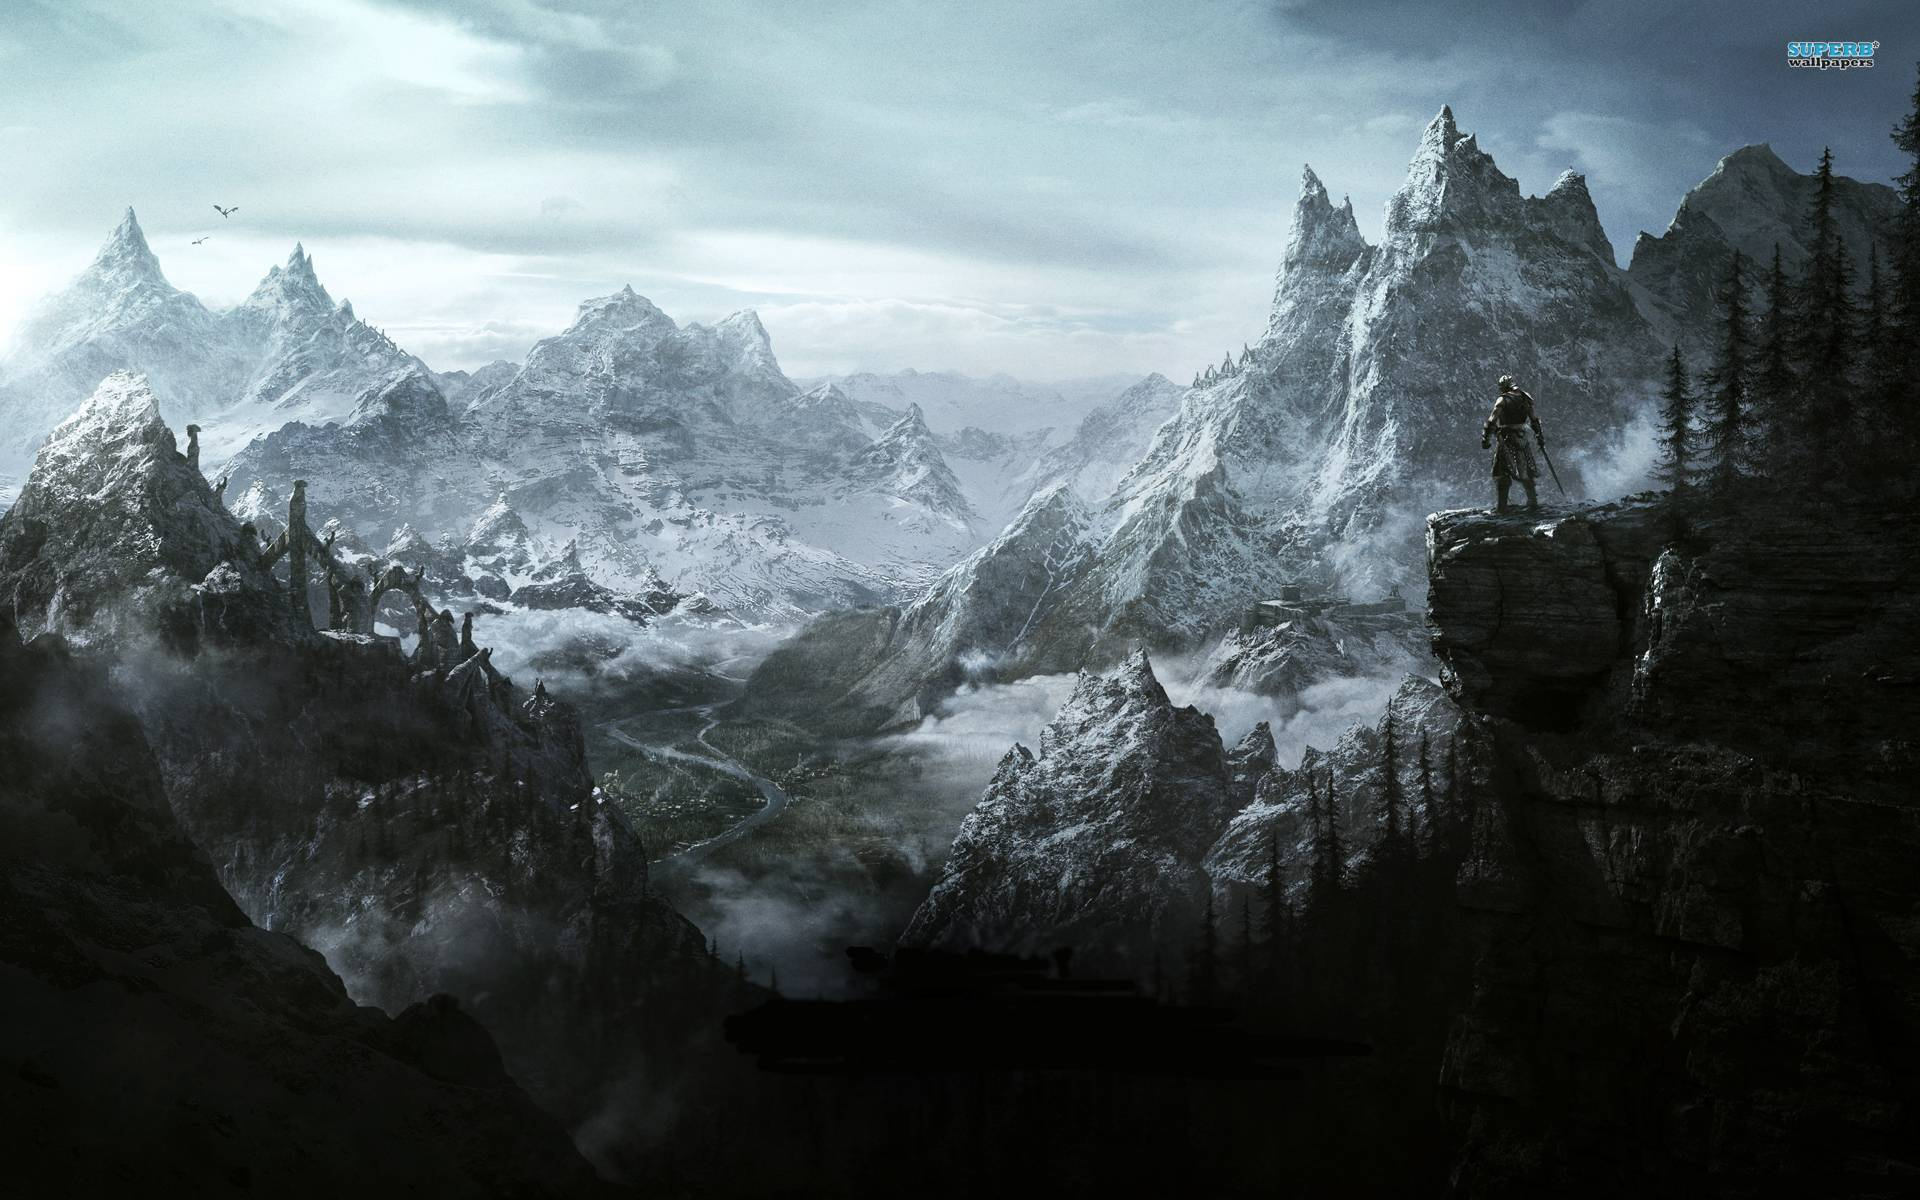 skyrim wallpapers 1920x1200 - wallpaper cave